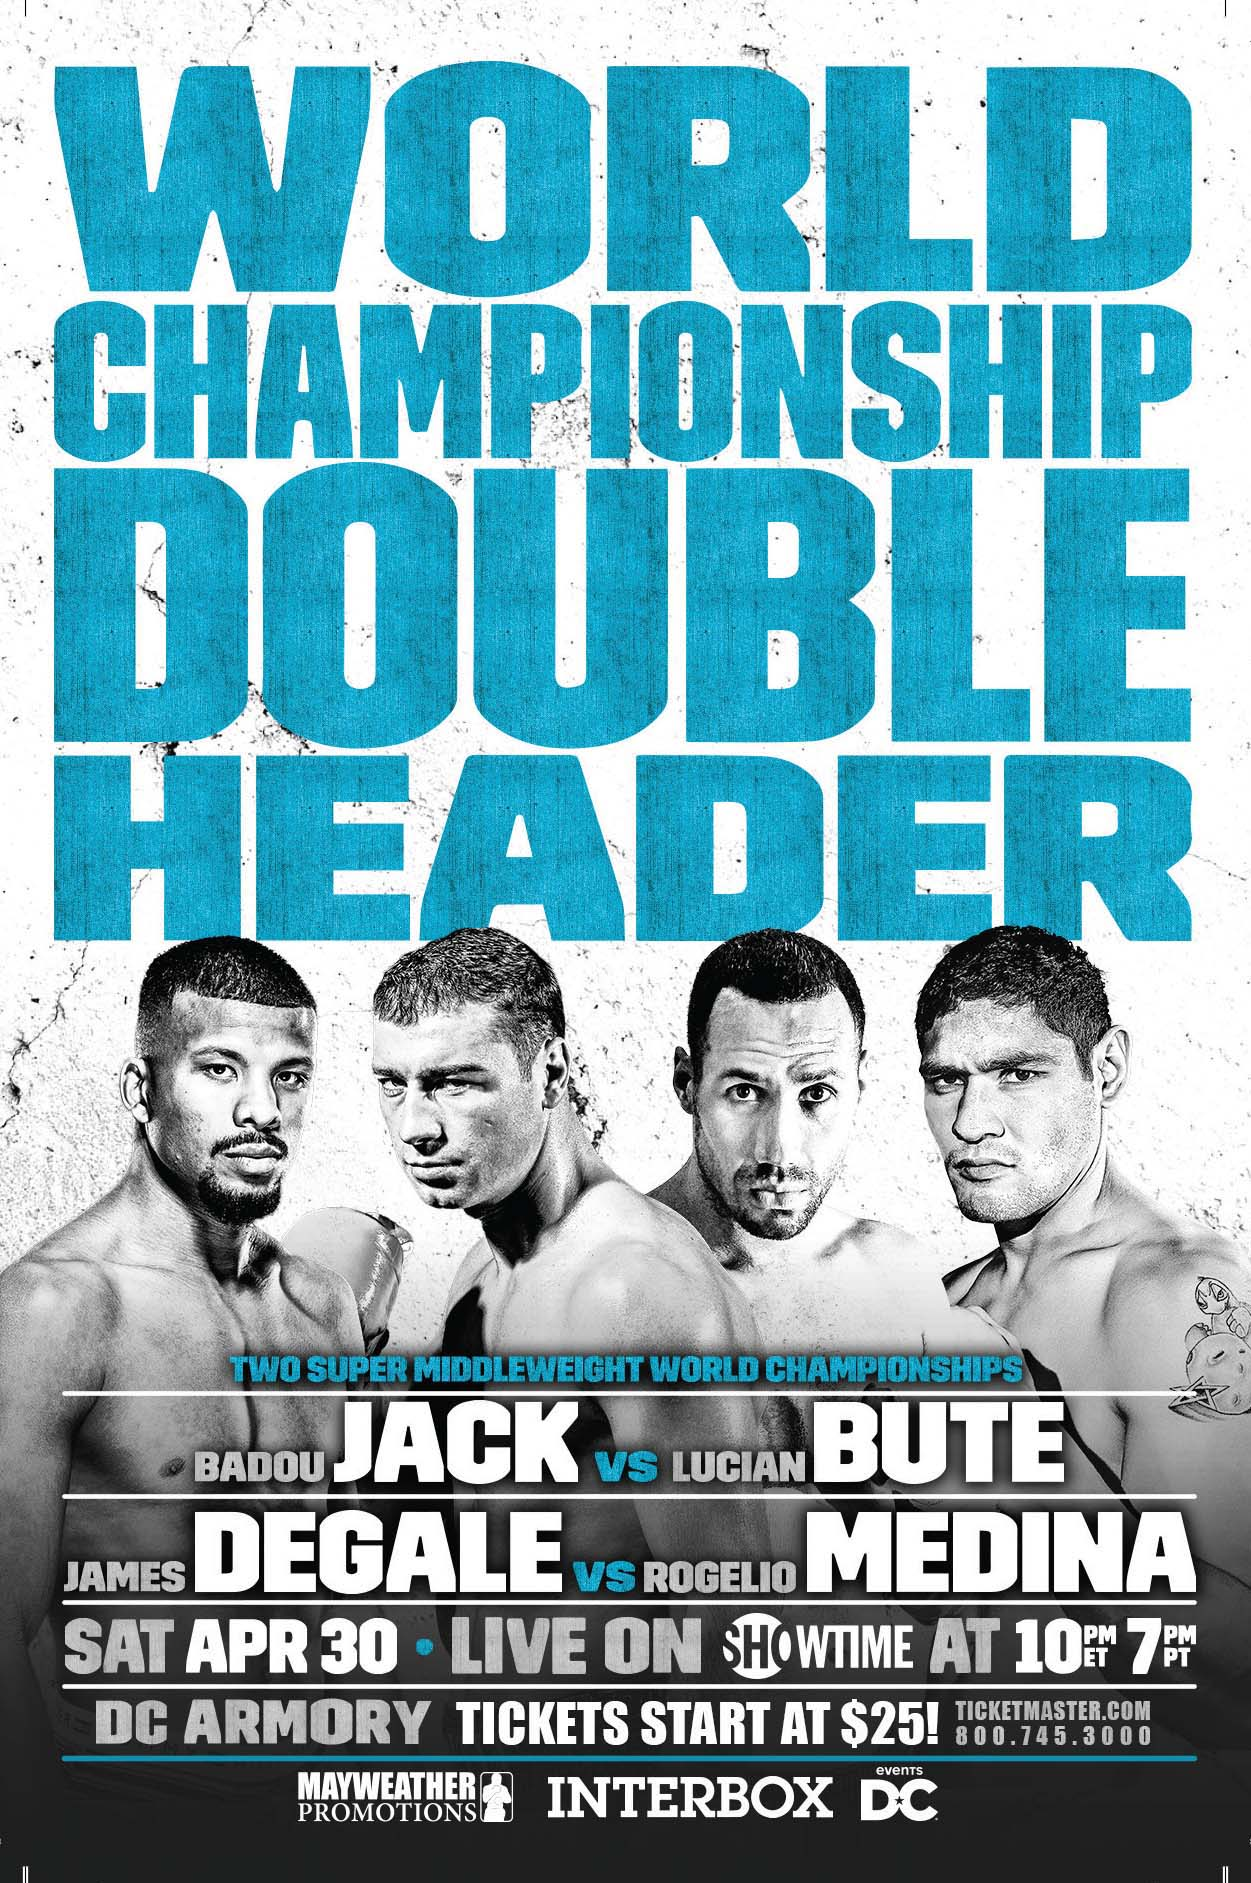 Badou Jack vs Lucien Bute Analysis